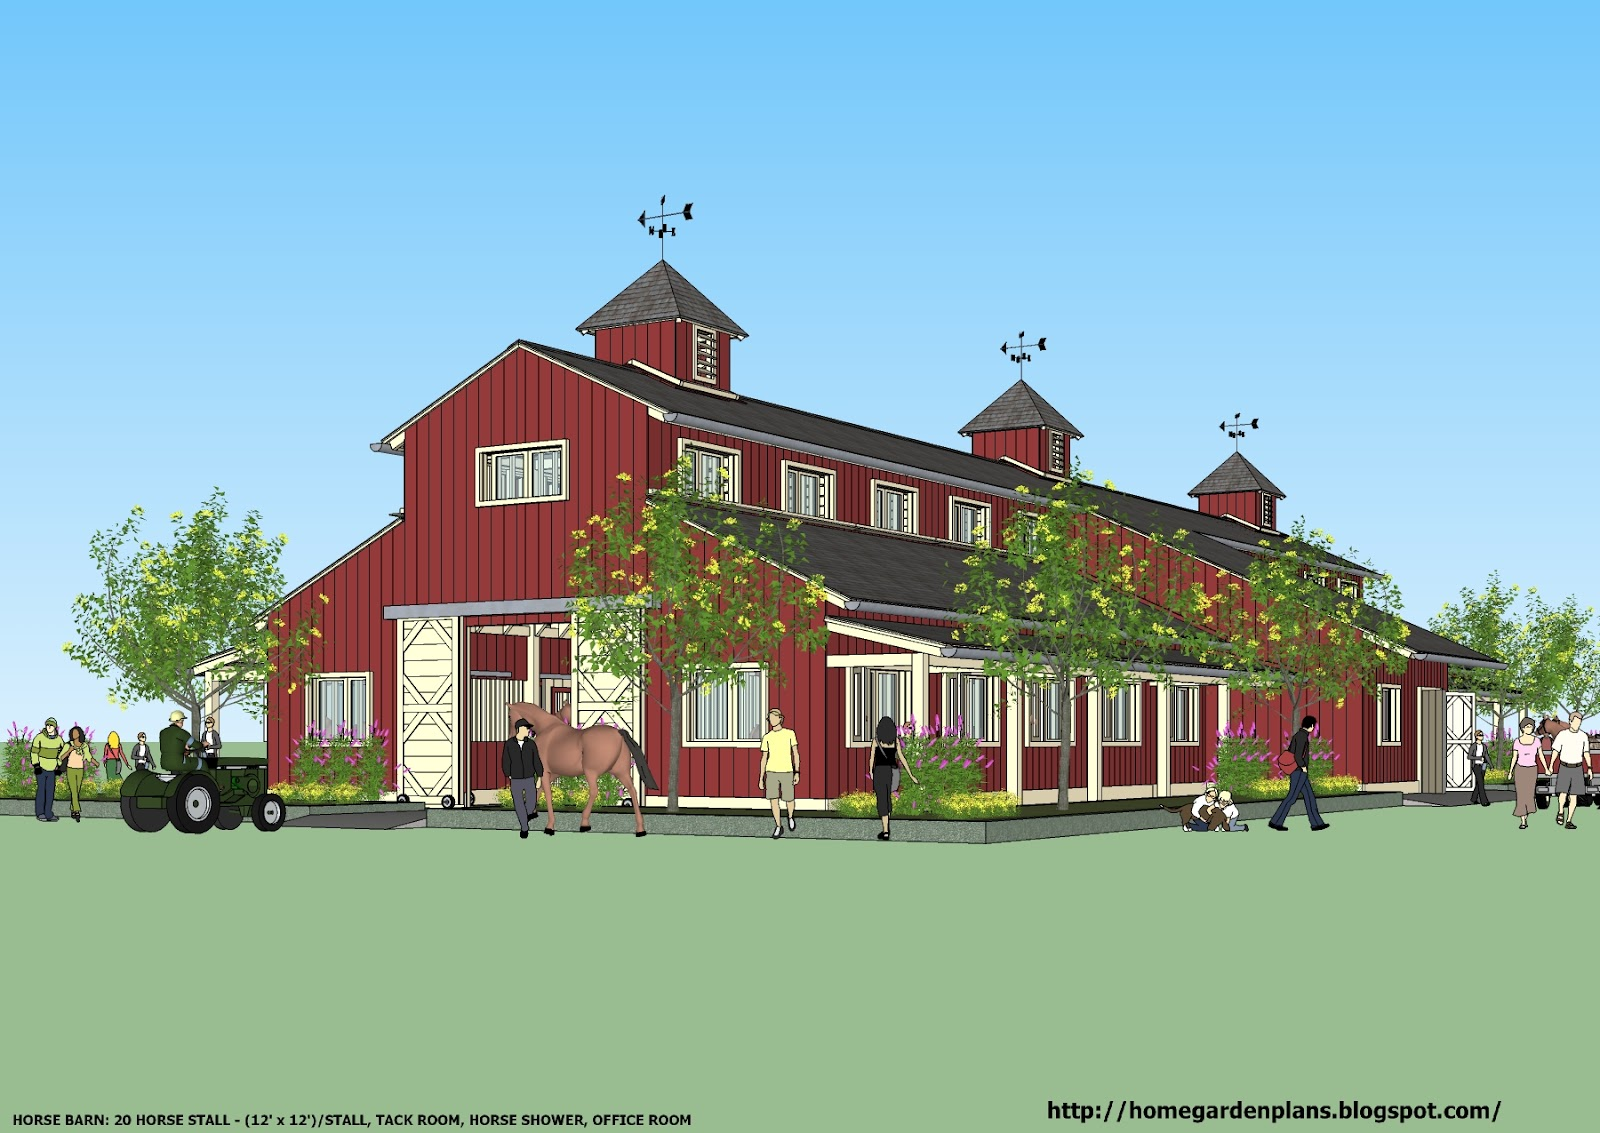 Home garden plans news b20h large horse barn plans for for Large barn plans